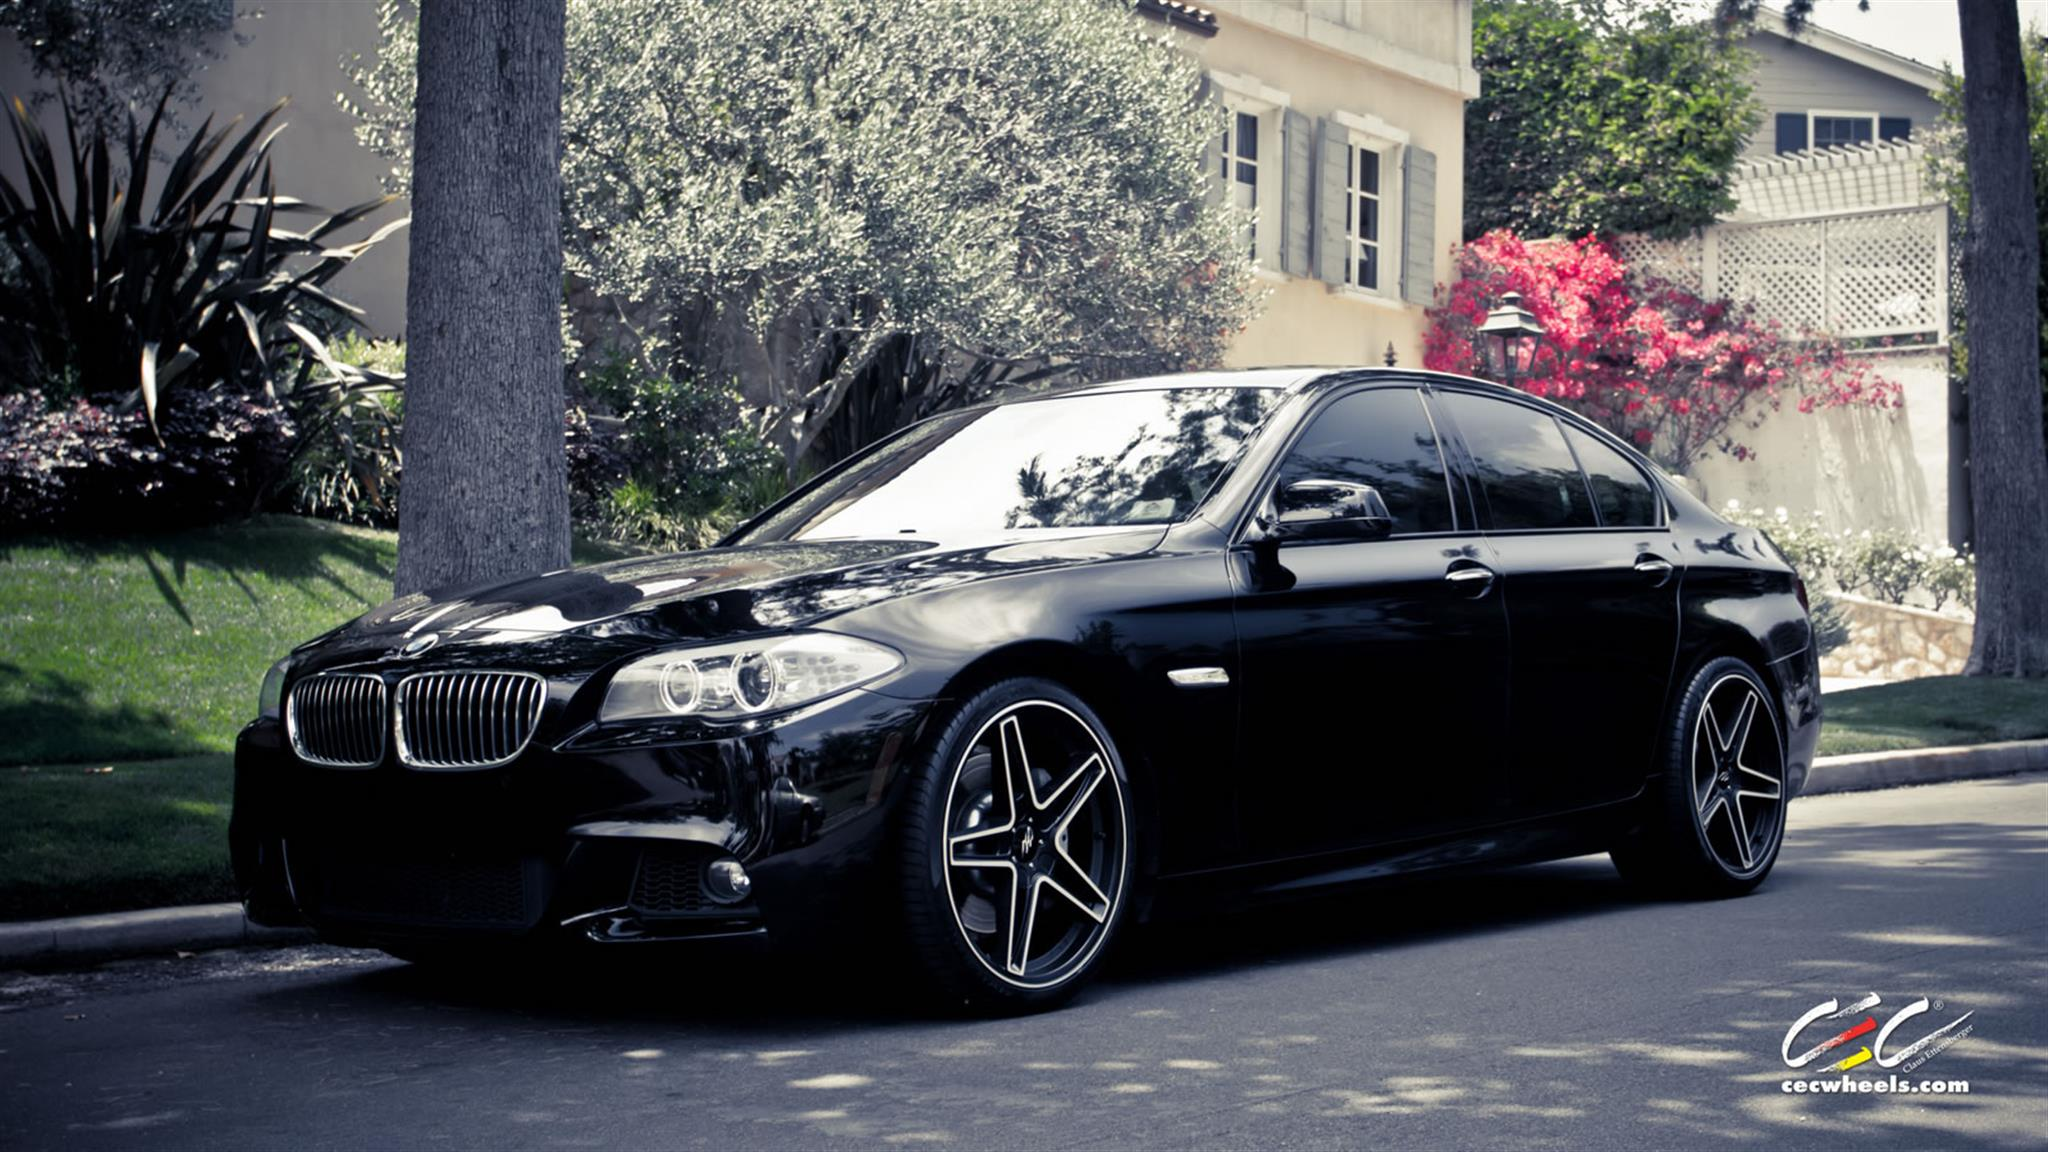 BMW - 5 Series -  - Wheels & Tires